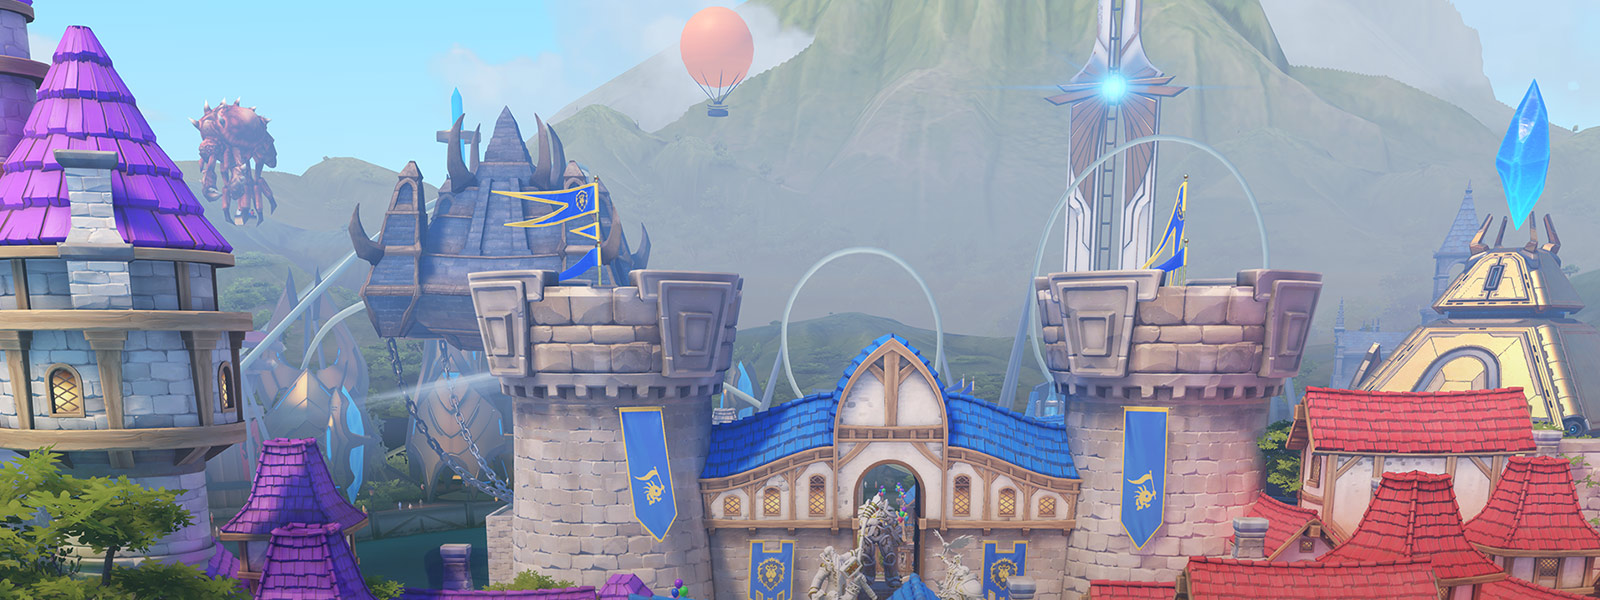 View of Azeroth, Protoss, and Zerg buildings in Blizzard World